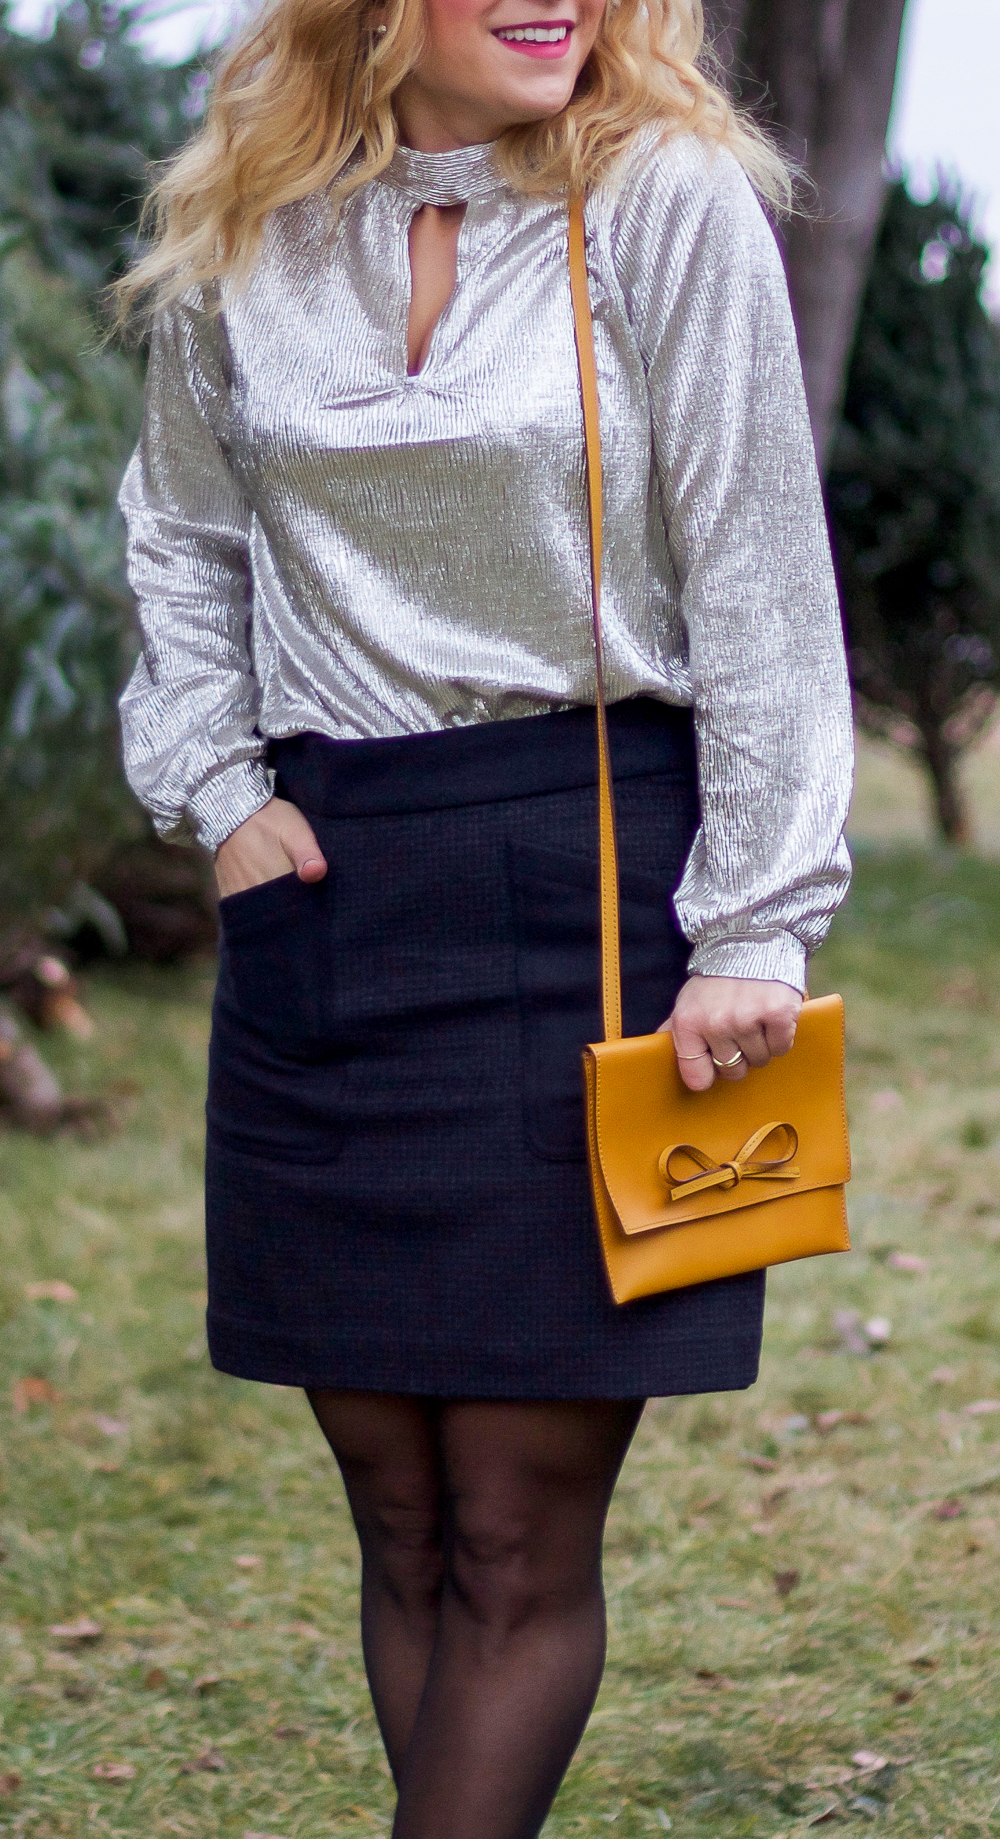 Toronto fashion blogger, Jackie Goldhar, wearing a holiday top from Express and a J.Crew skirt with oversized pockets